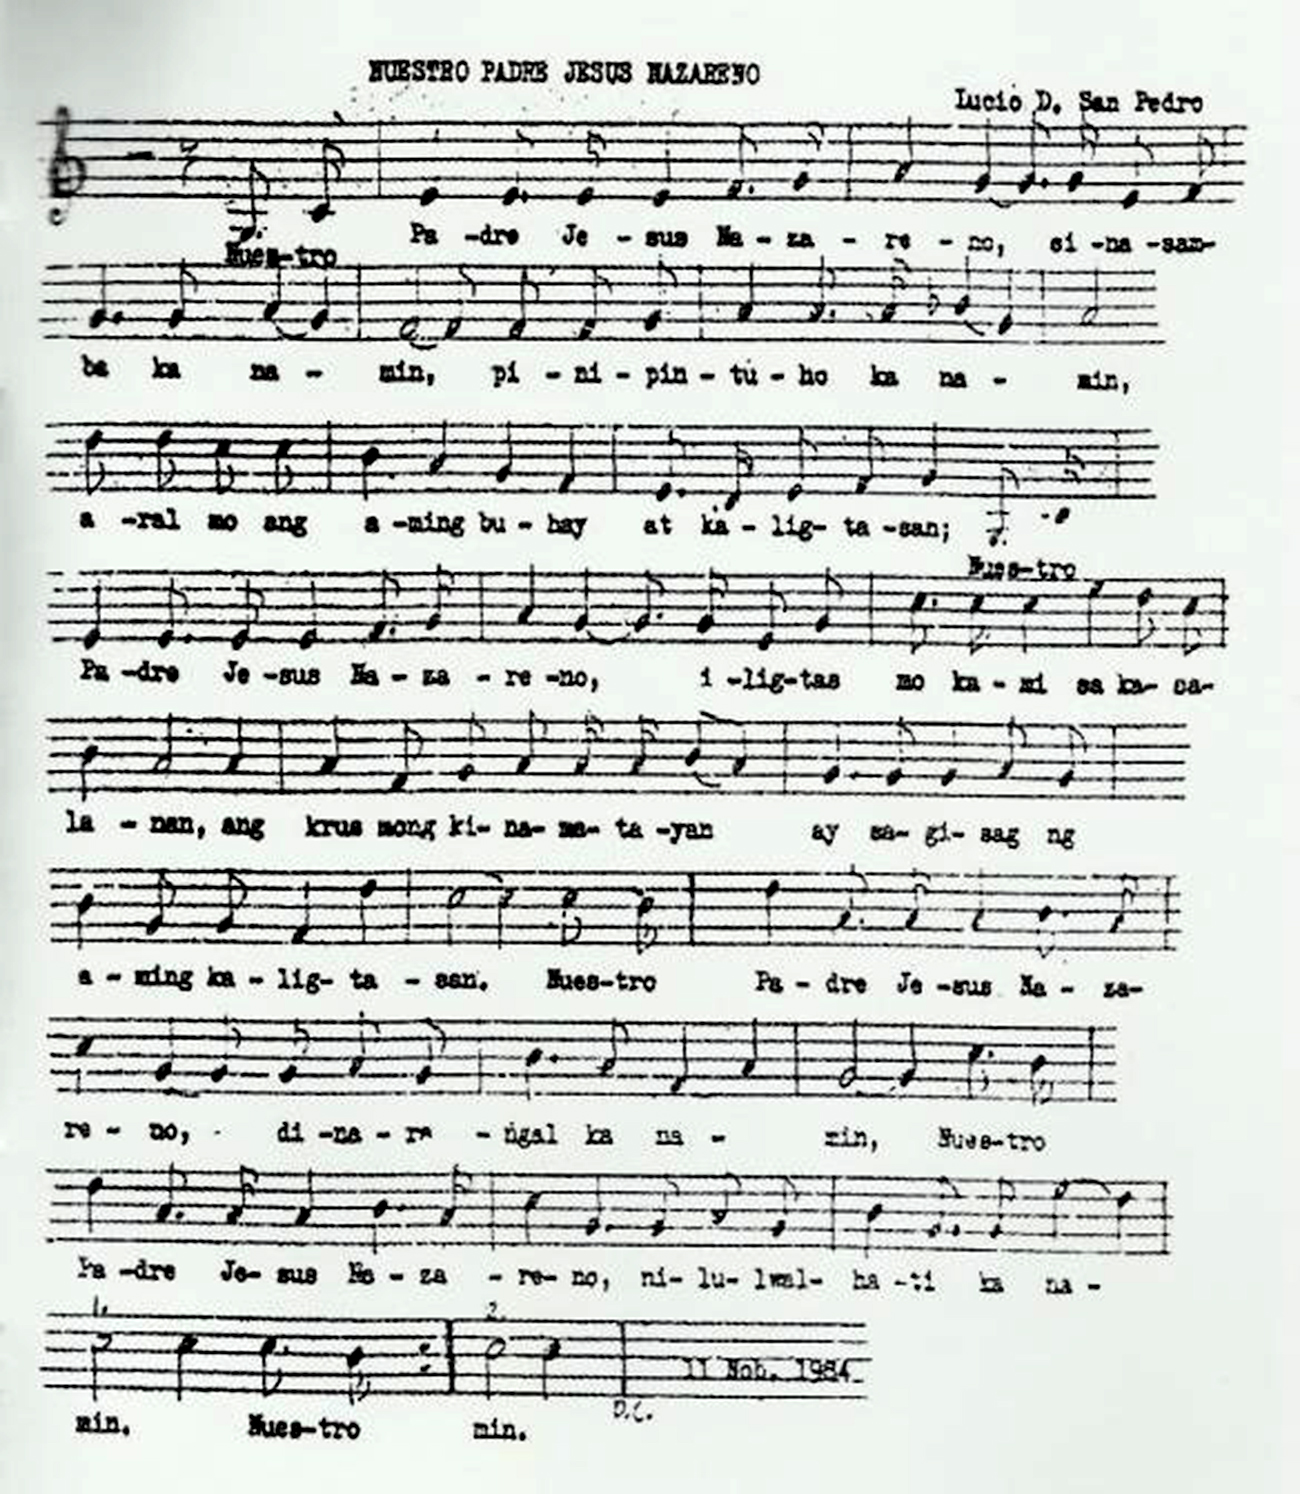 Nuestro Padre Jesus Nazareno Lyrics And Chordsmusic Sheet